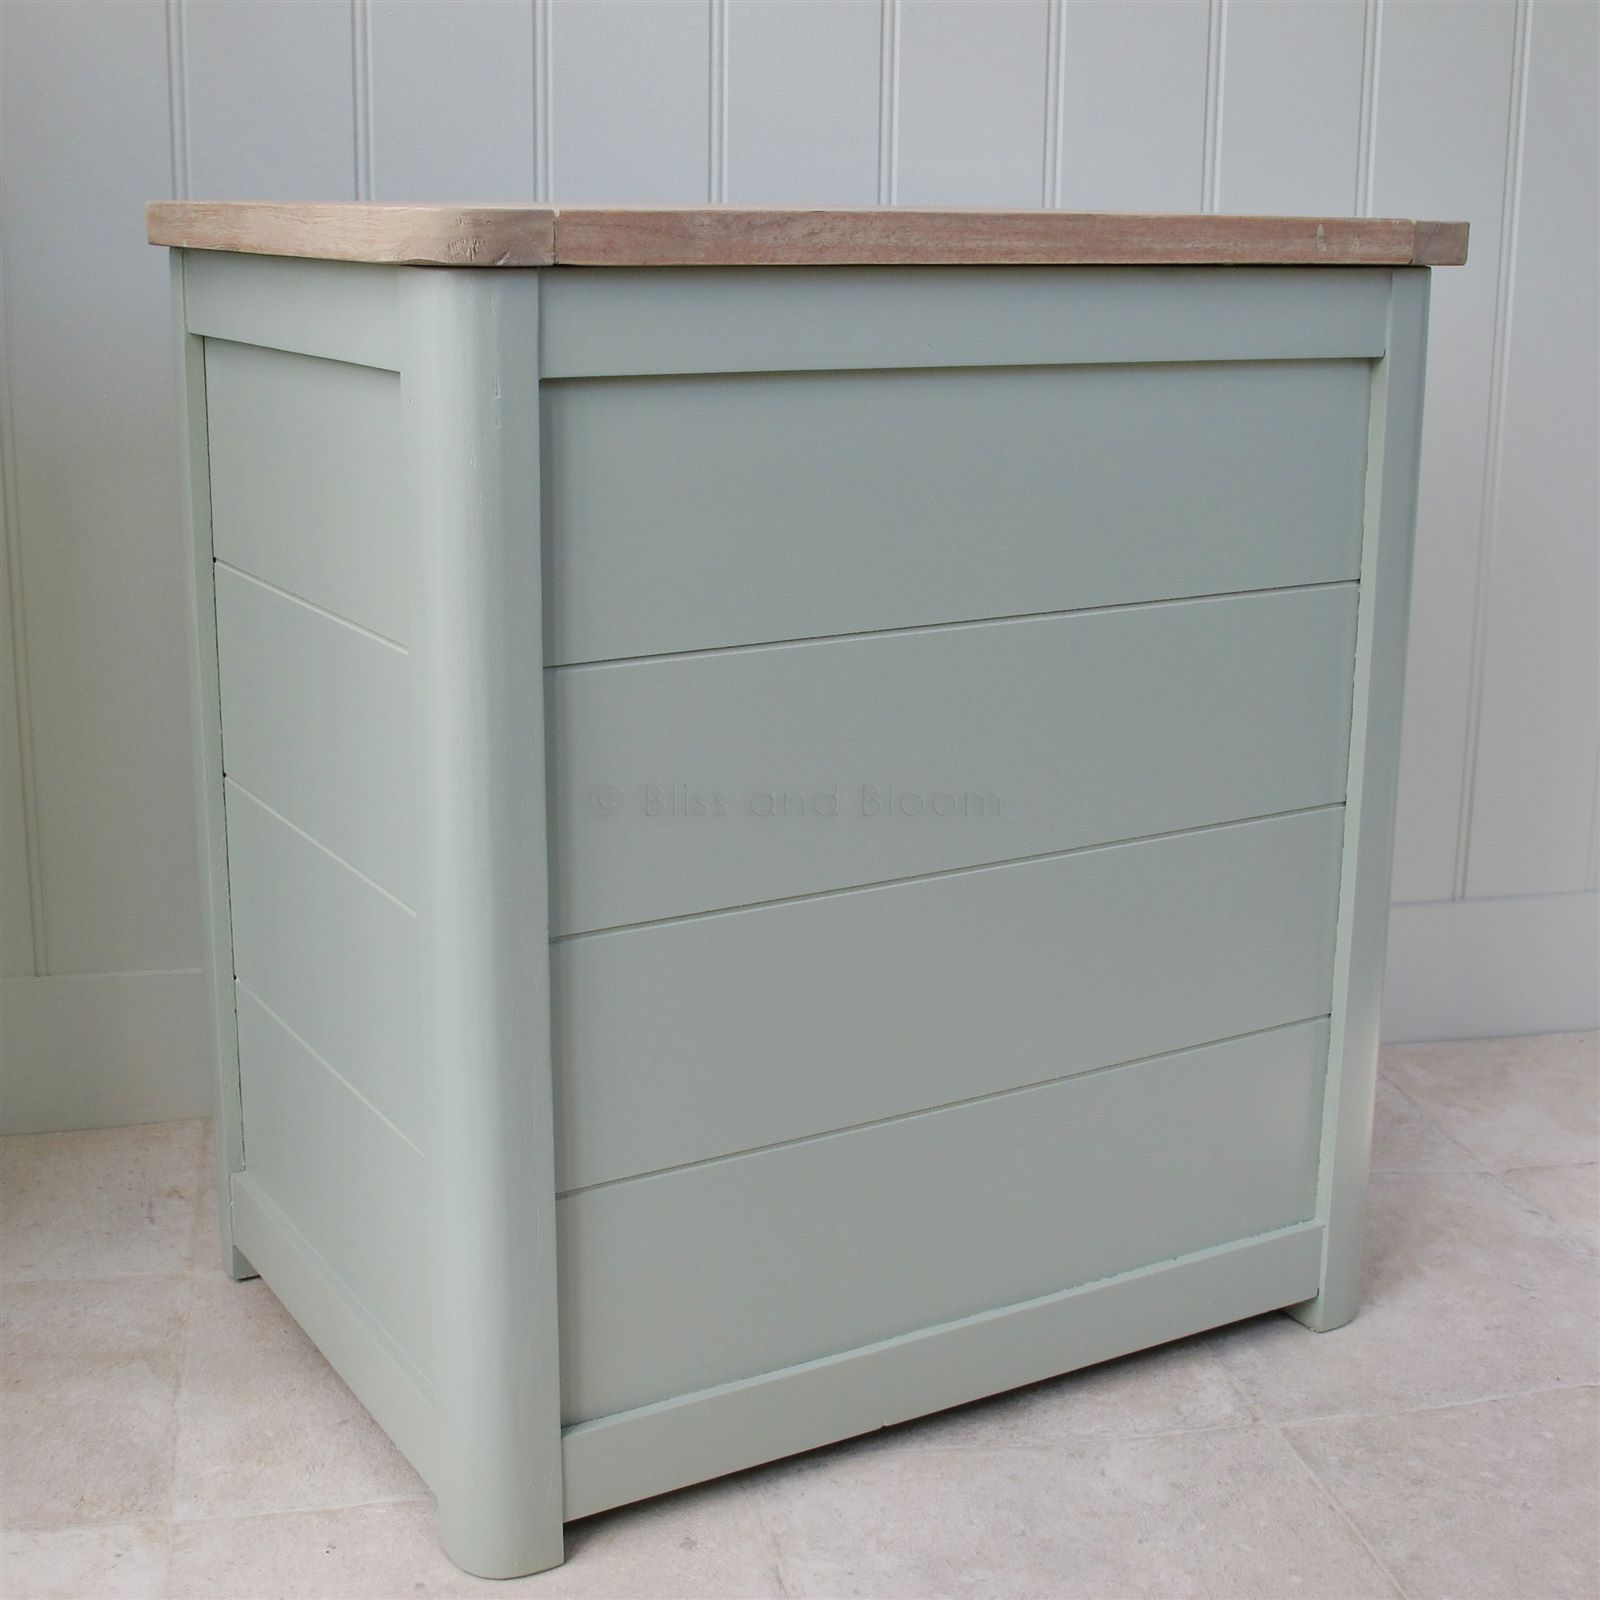 Wooden Laundry Bin Medium | Bliss and Bloom Ltd